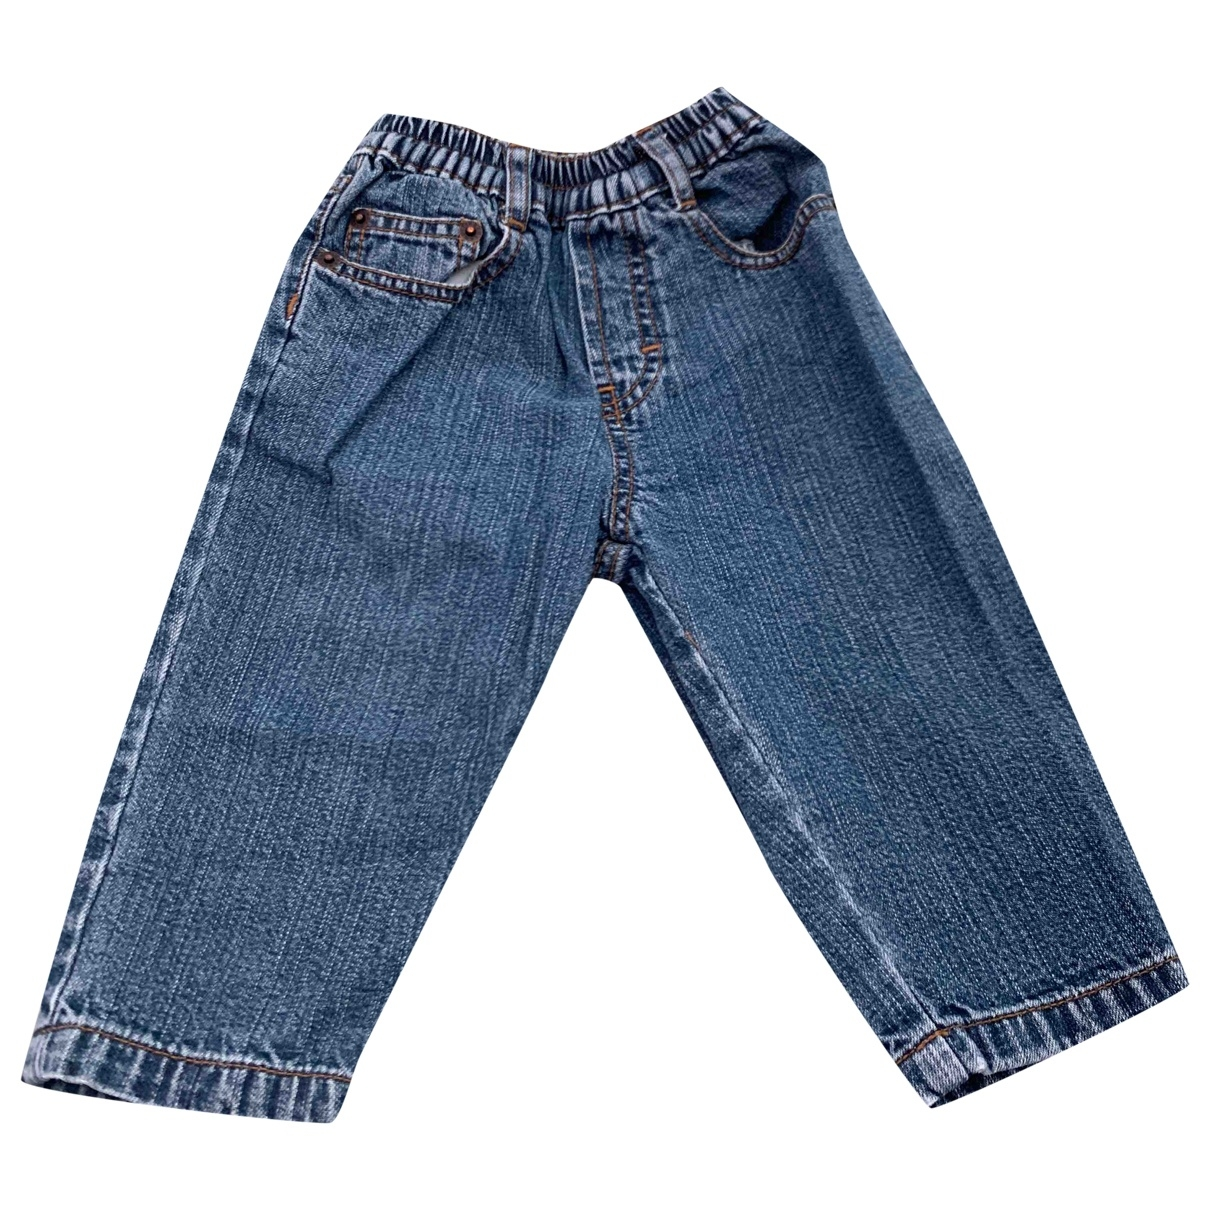 Timberland \N Blue Denim - Jeans Trousers for Kids 9 months - up to 71cm FR